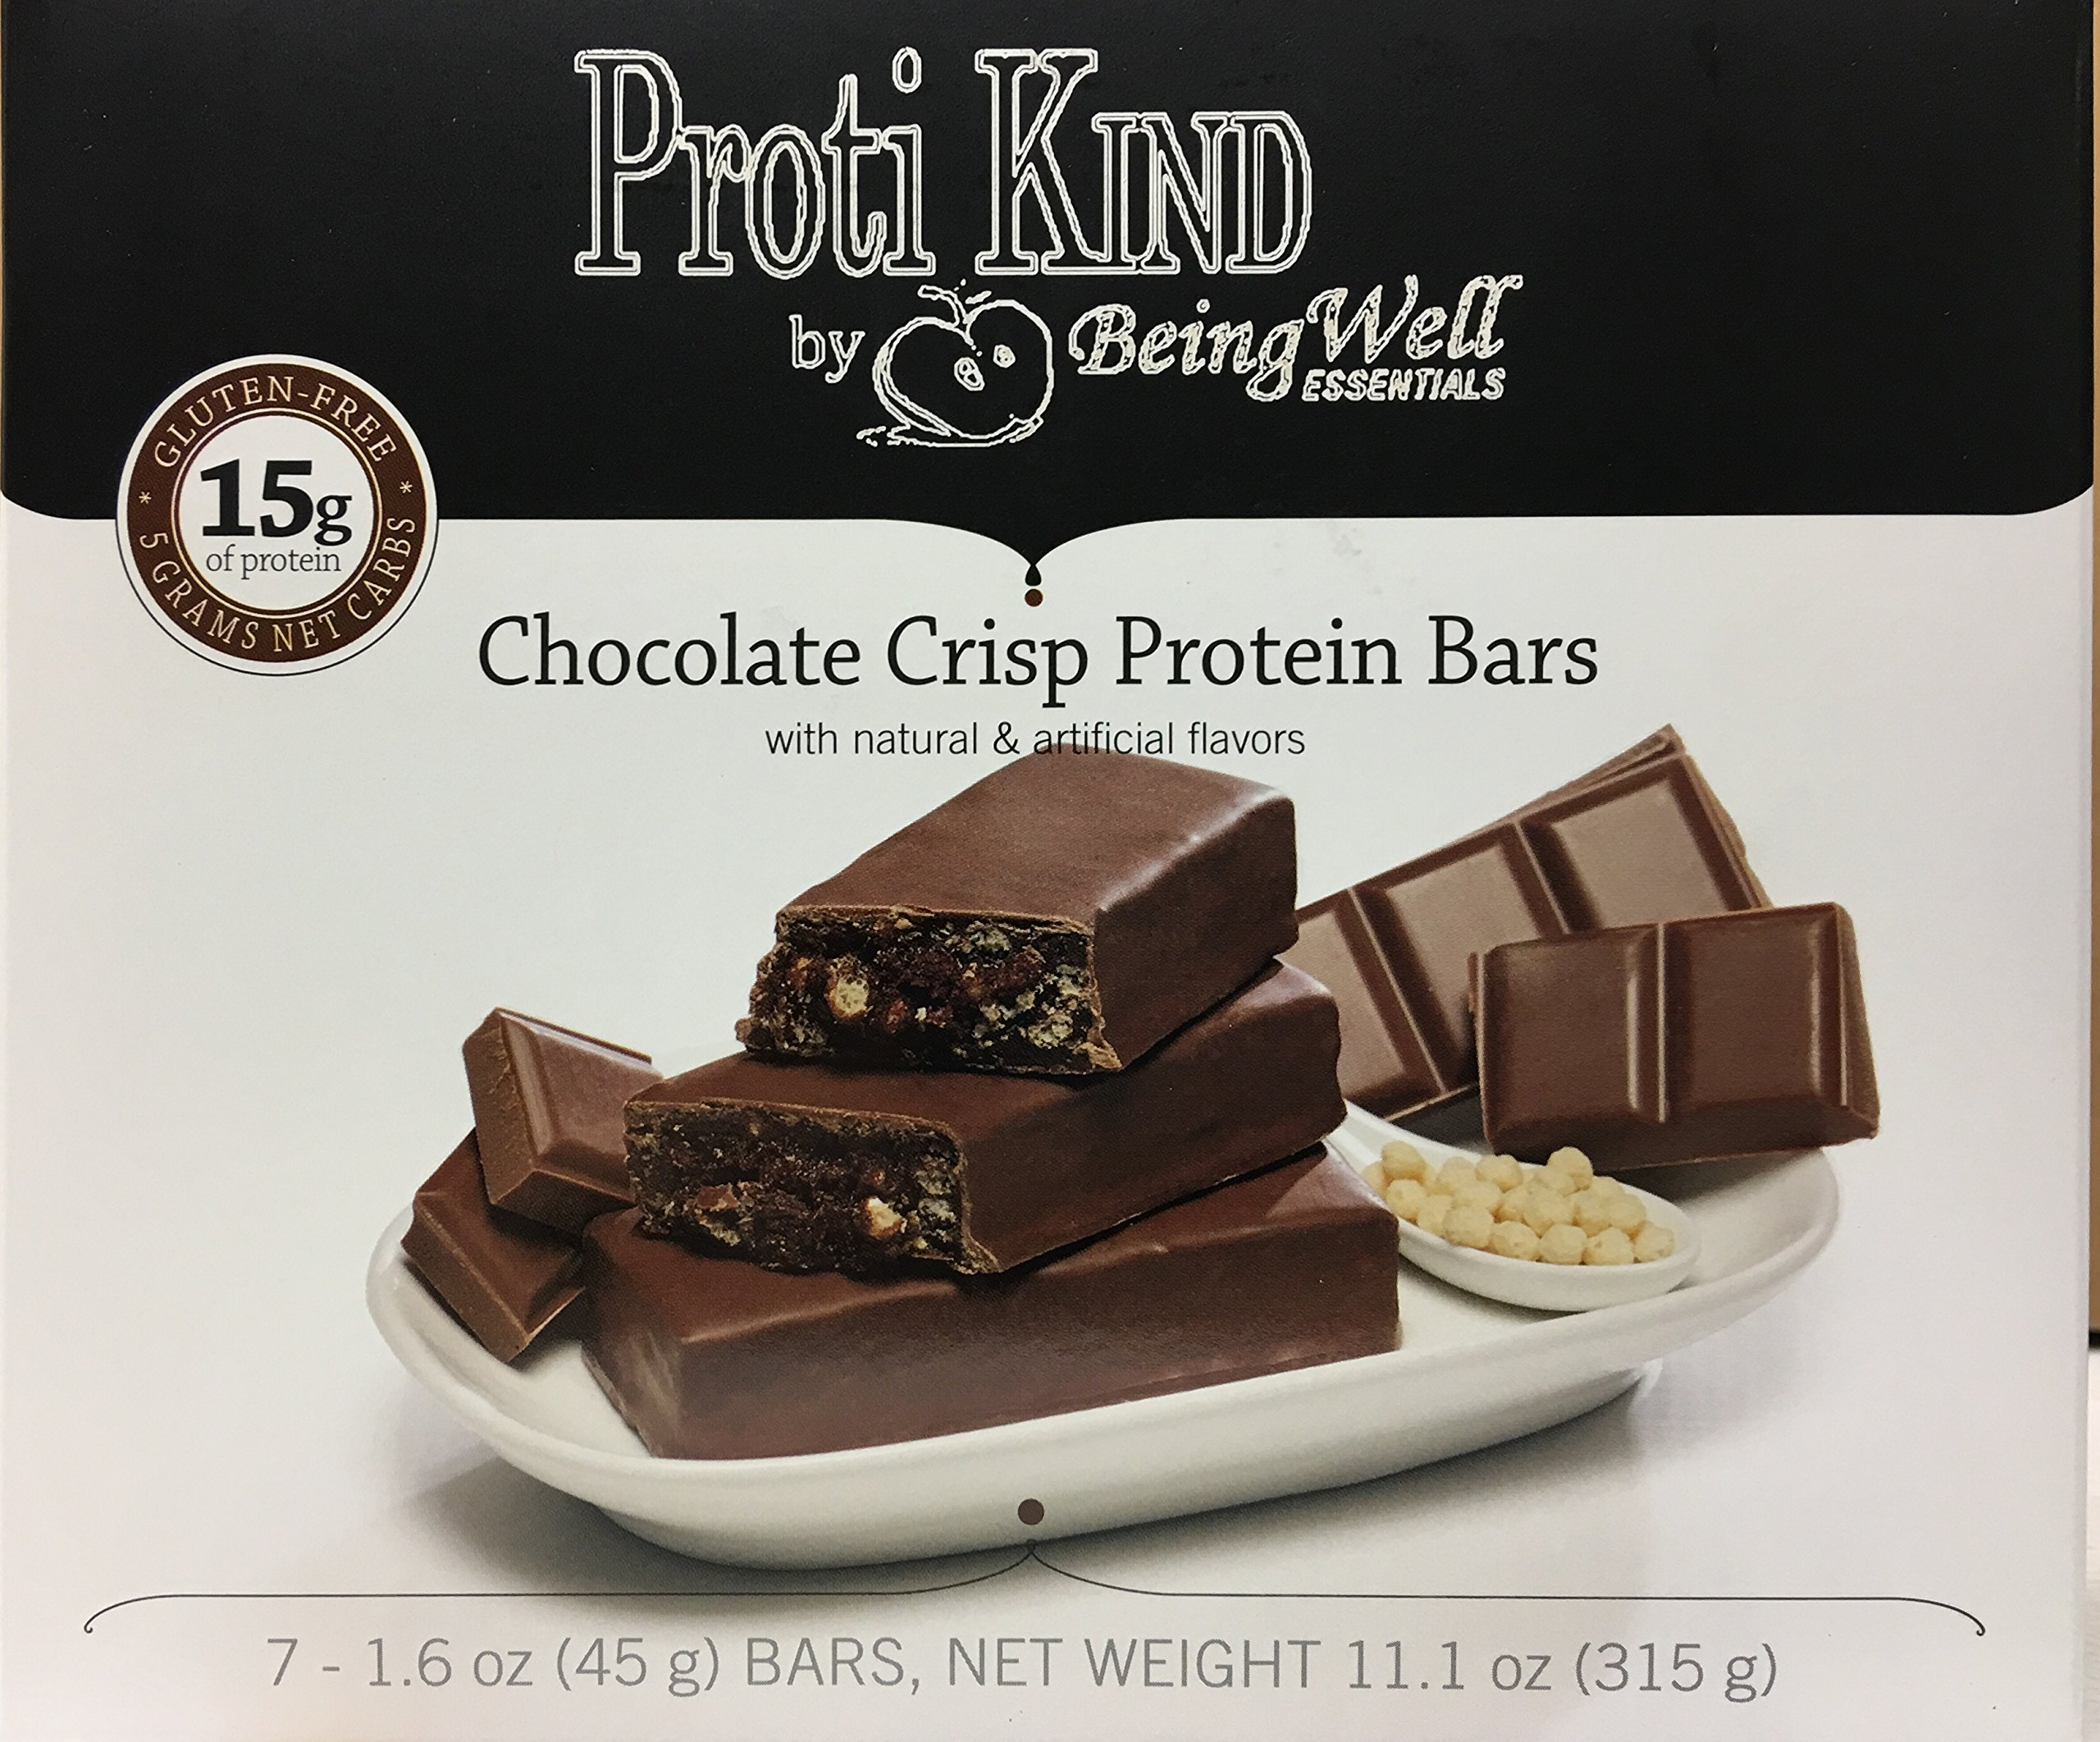 Proti Kind Bariatric Very Low Carb, Low Fat, Low Sugar - Bars Full Case of 84 Bars - 12 Boxes of 7 Each Bars - (Chocolate Crisp)